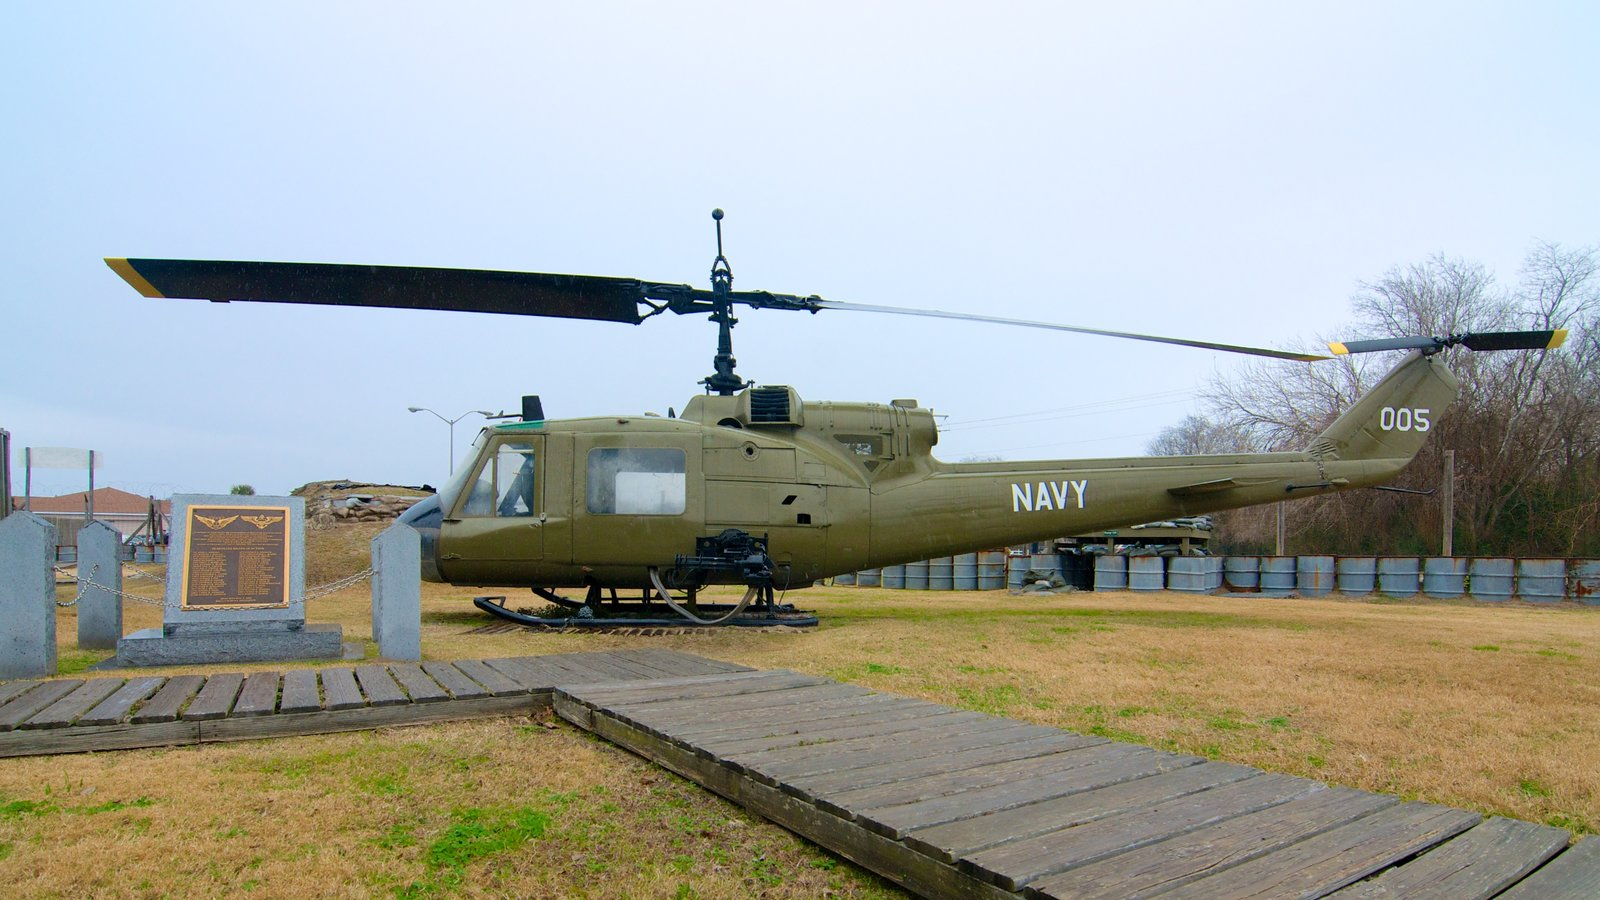 Patriots Point Naval and Maritime Museum que inclui aeronave e itens militares